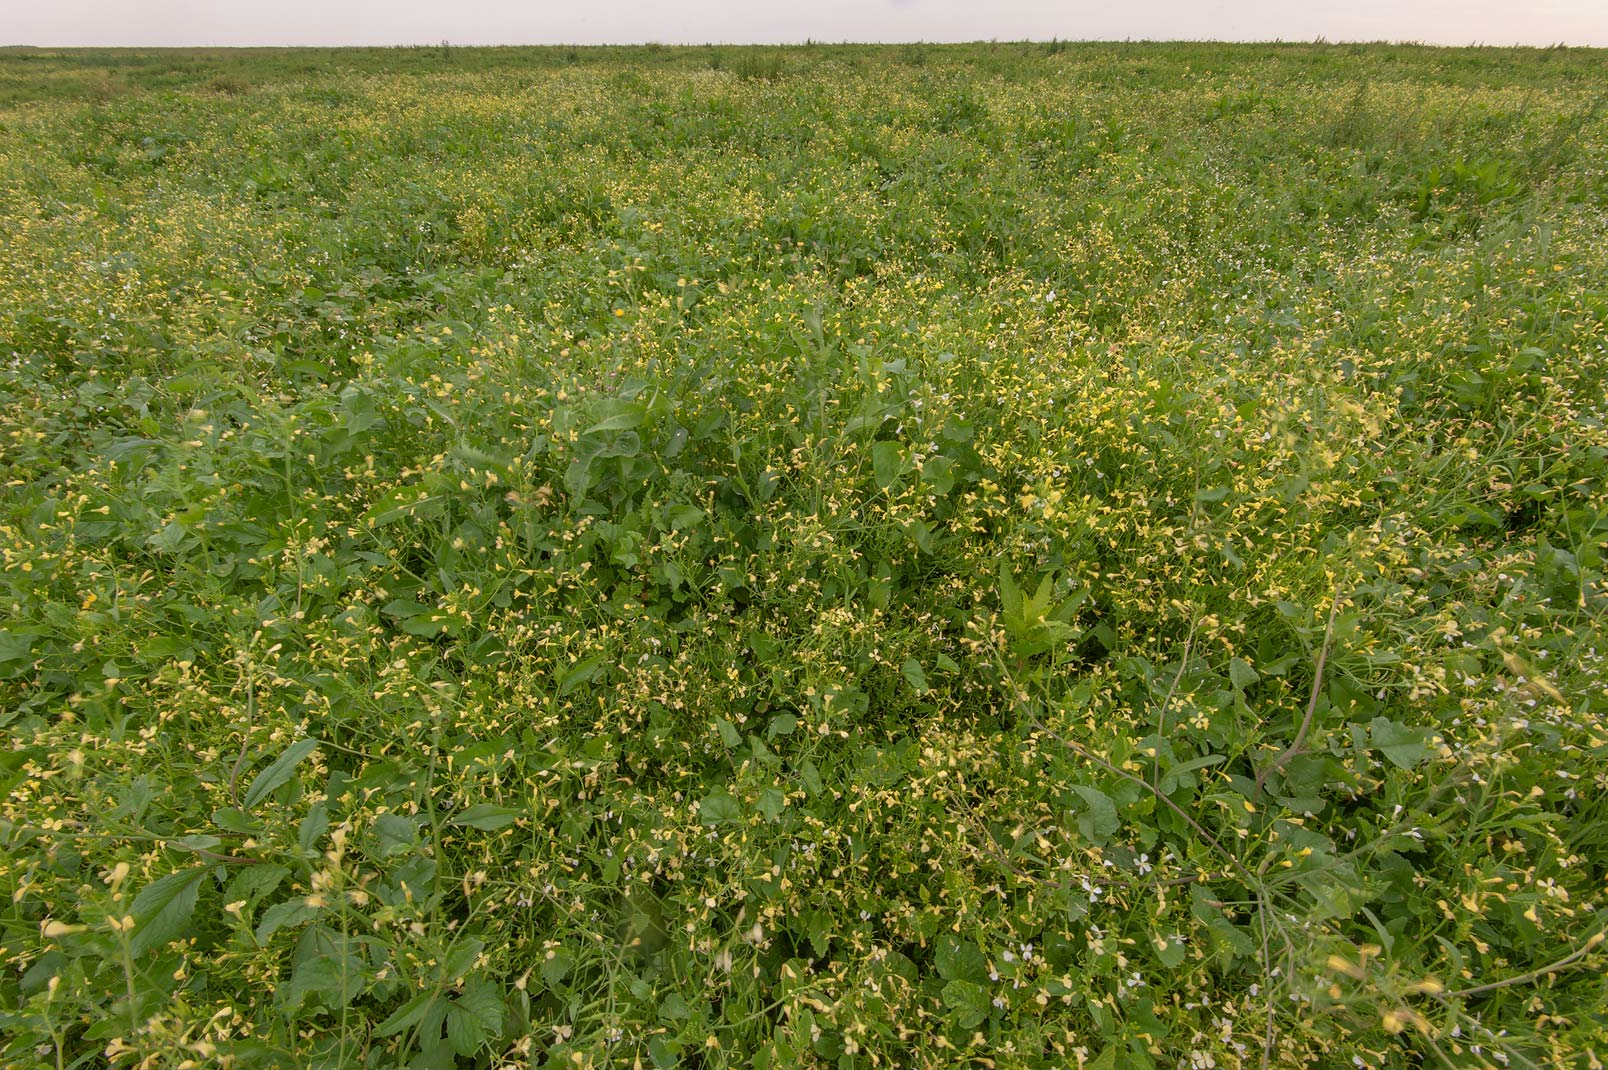 Masses of blooming rapeseed (Brassica napus) on...in Irkhaya (Irkaya) Farms. Qatar